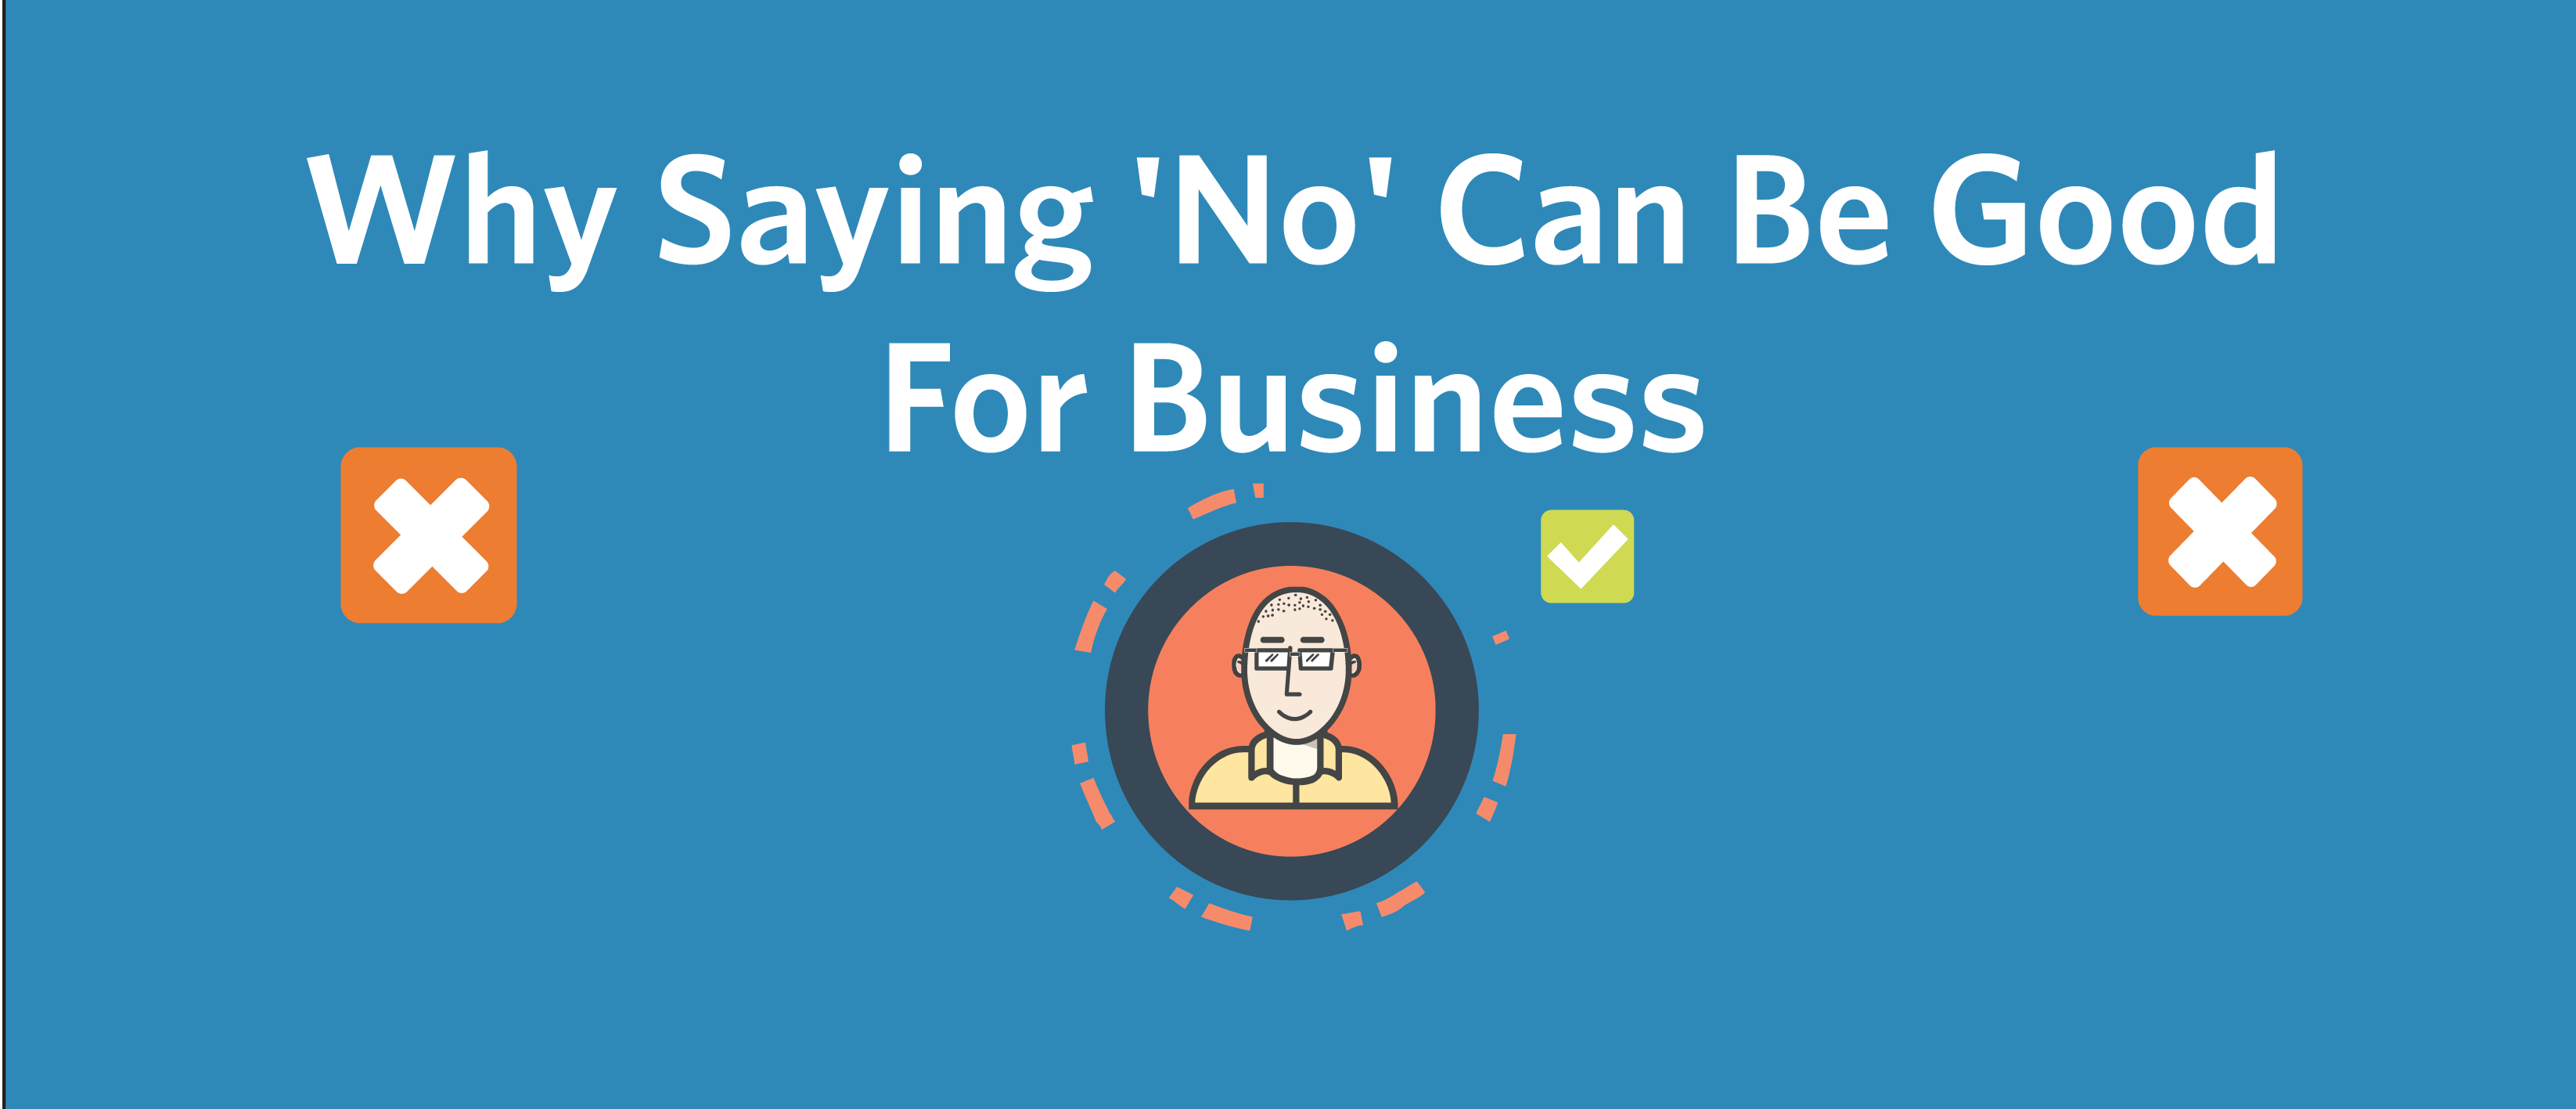 Why Saying 'No' Can Be Good For Business